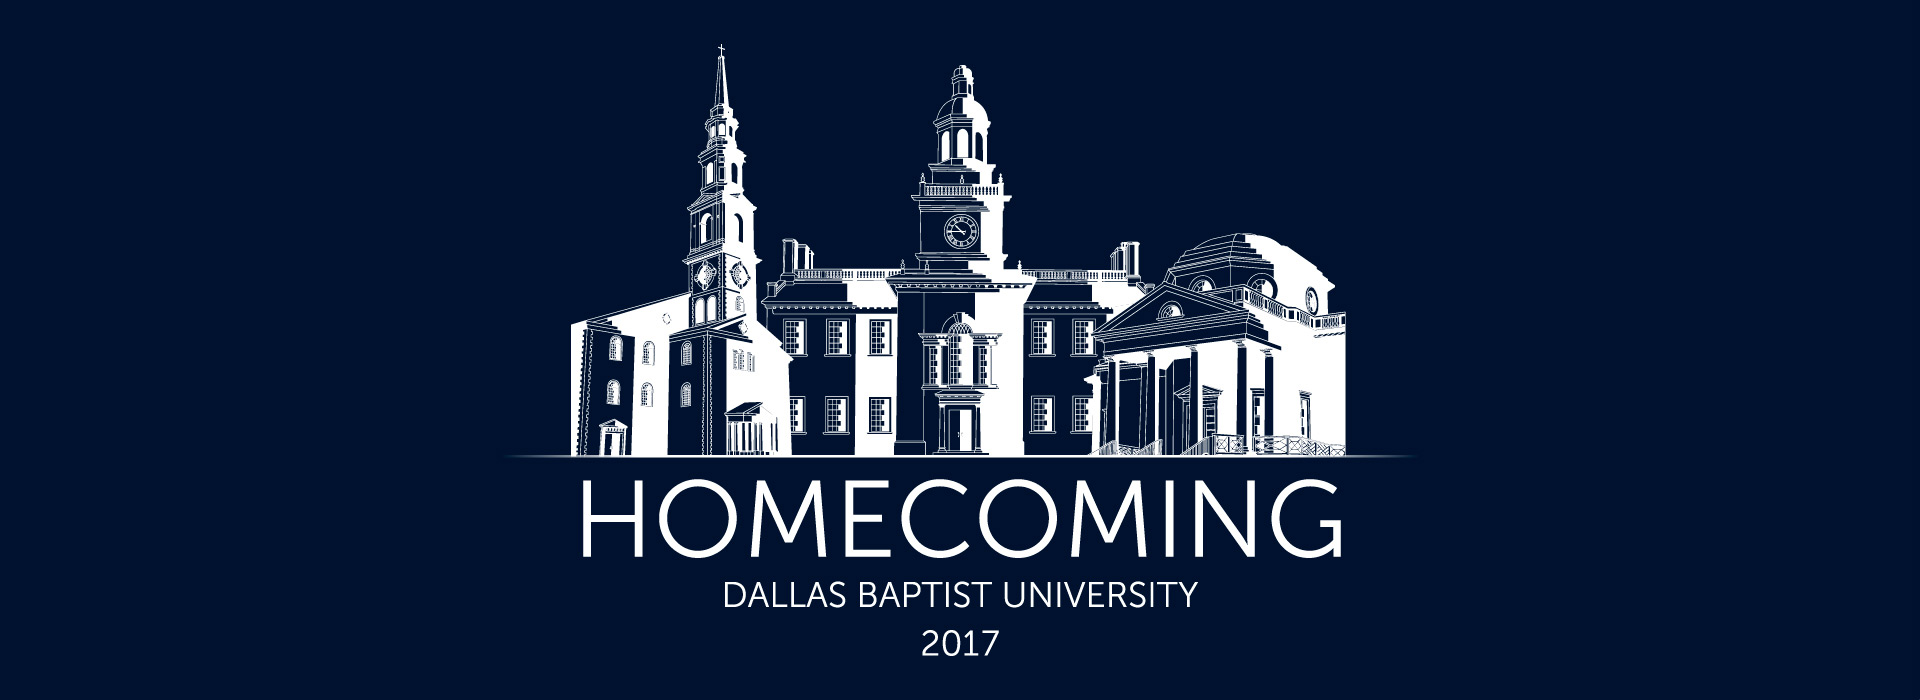 DBU's Homcoming 2017 - A Family Tradition Banner